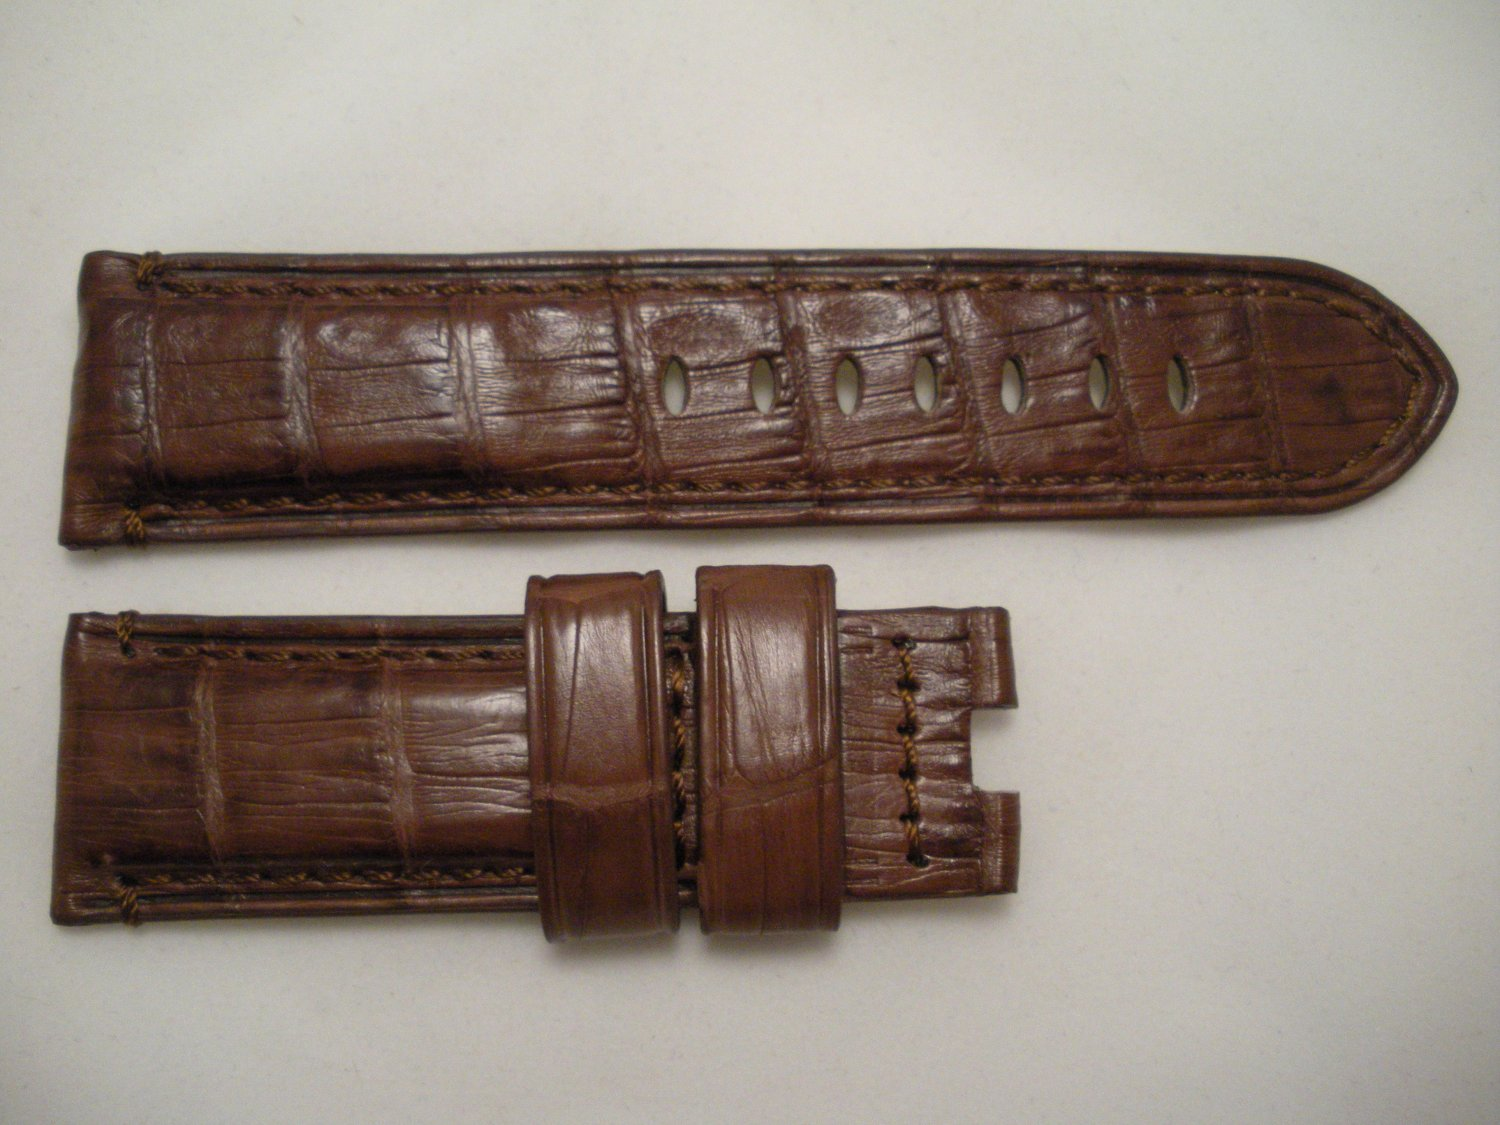 24mm Brown Genuine Crocodile Leather Strap Only for Panerai Buckles